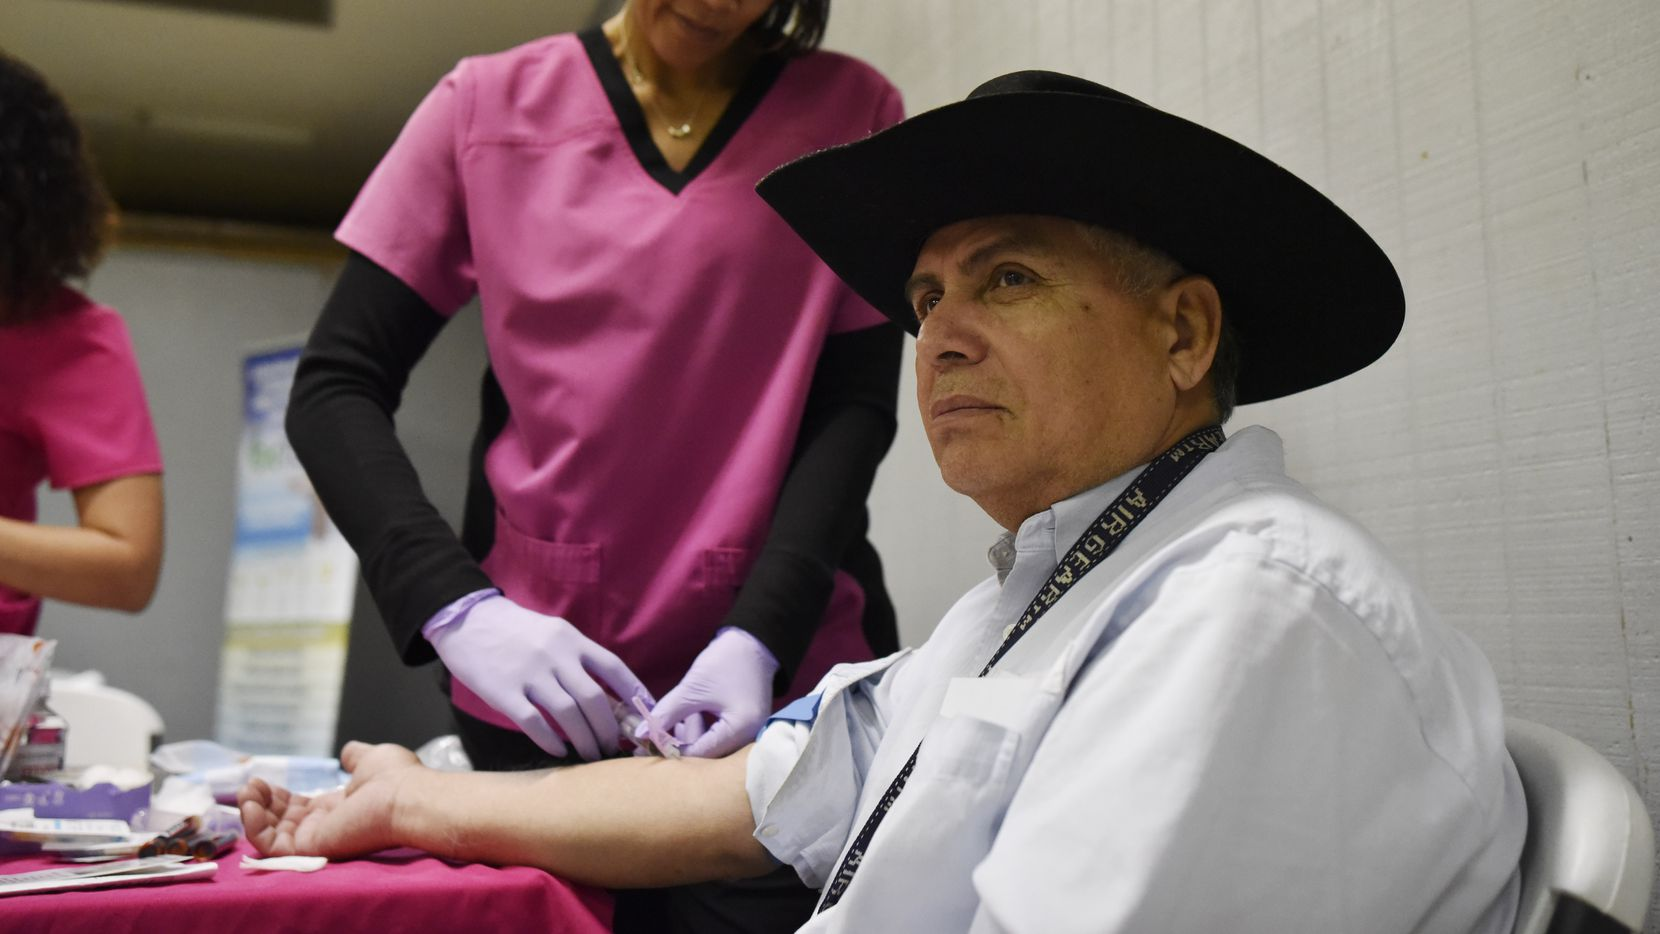 Salvador Cervantes, 63, has his blood collected during a health and safety fair last month in Dallas. Primary care accounts for less than 6% of all health spending in the U.S., less than half the average share of other developed countries.